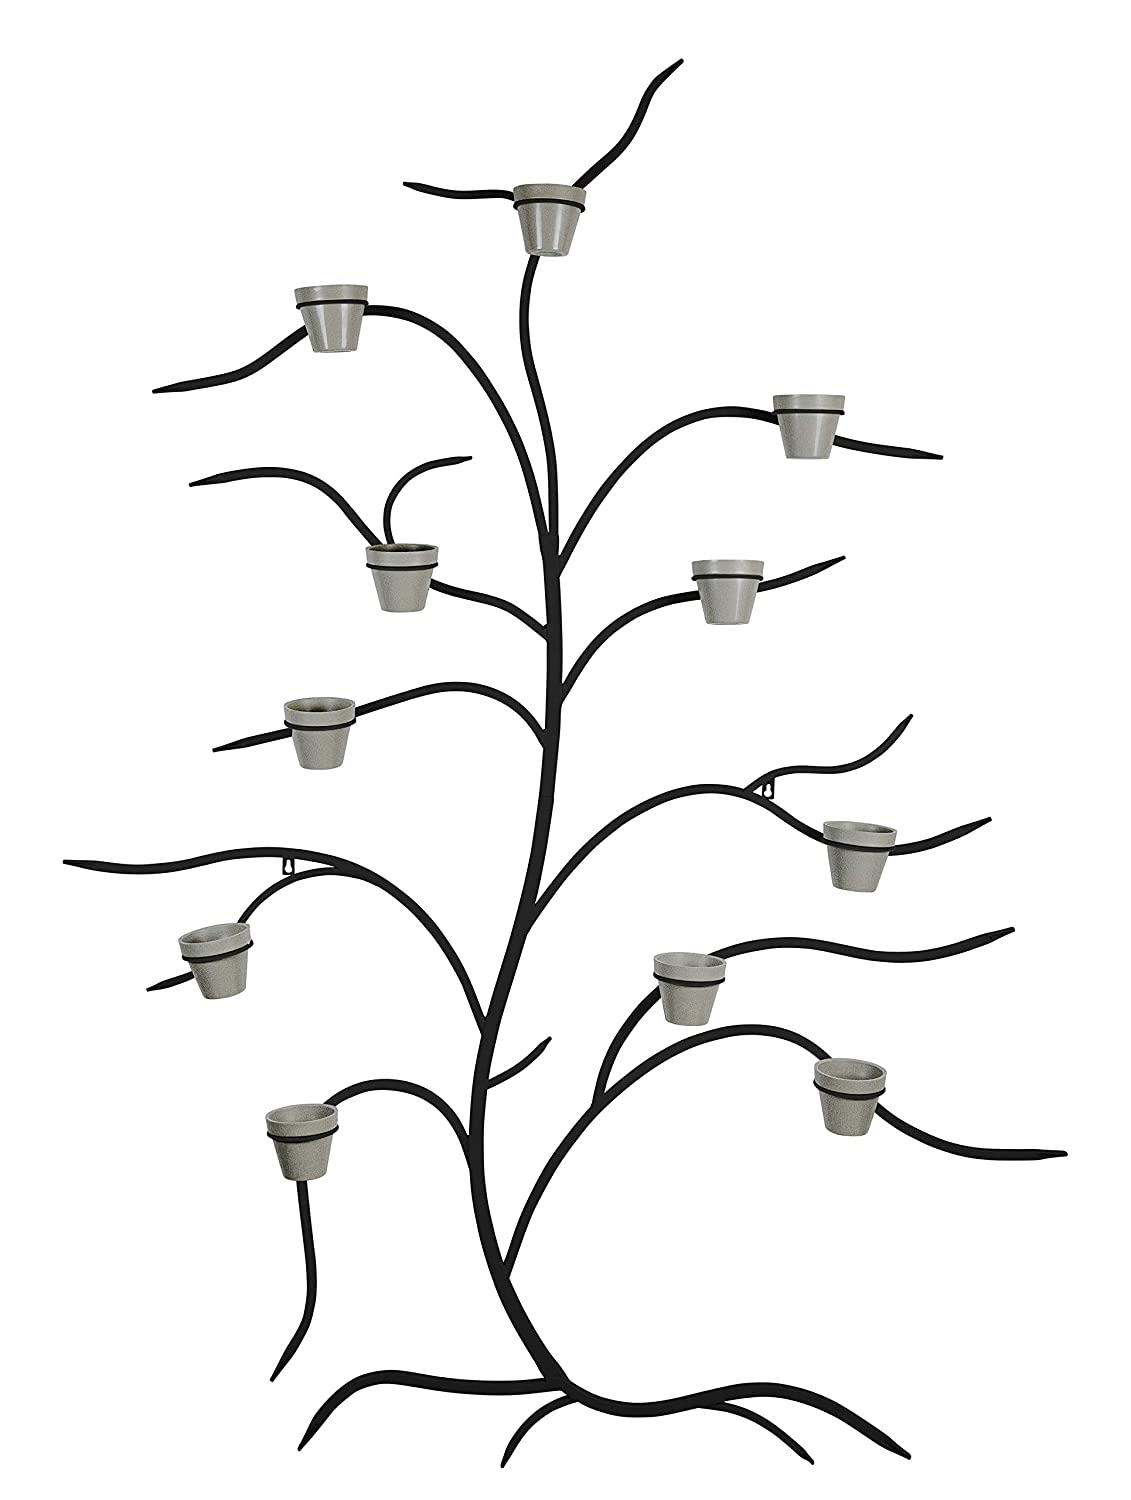 Martha Stewart Garden, Metal Tree Wall Planter with 11 Pots, Black